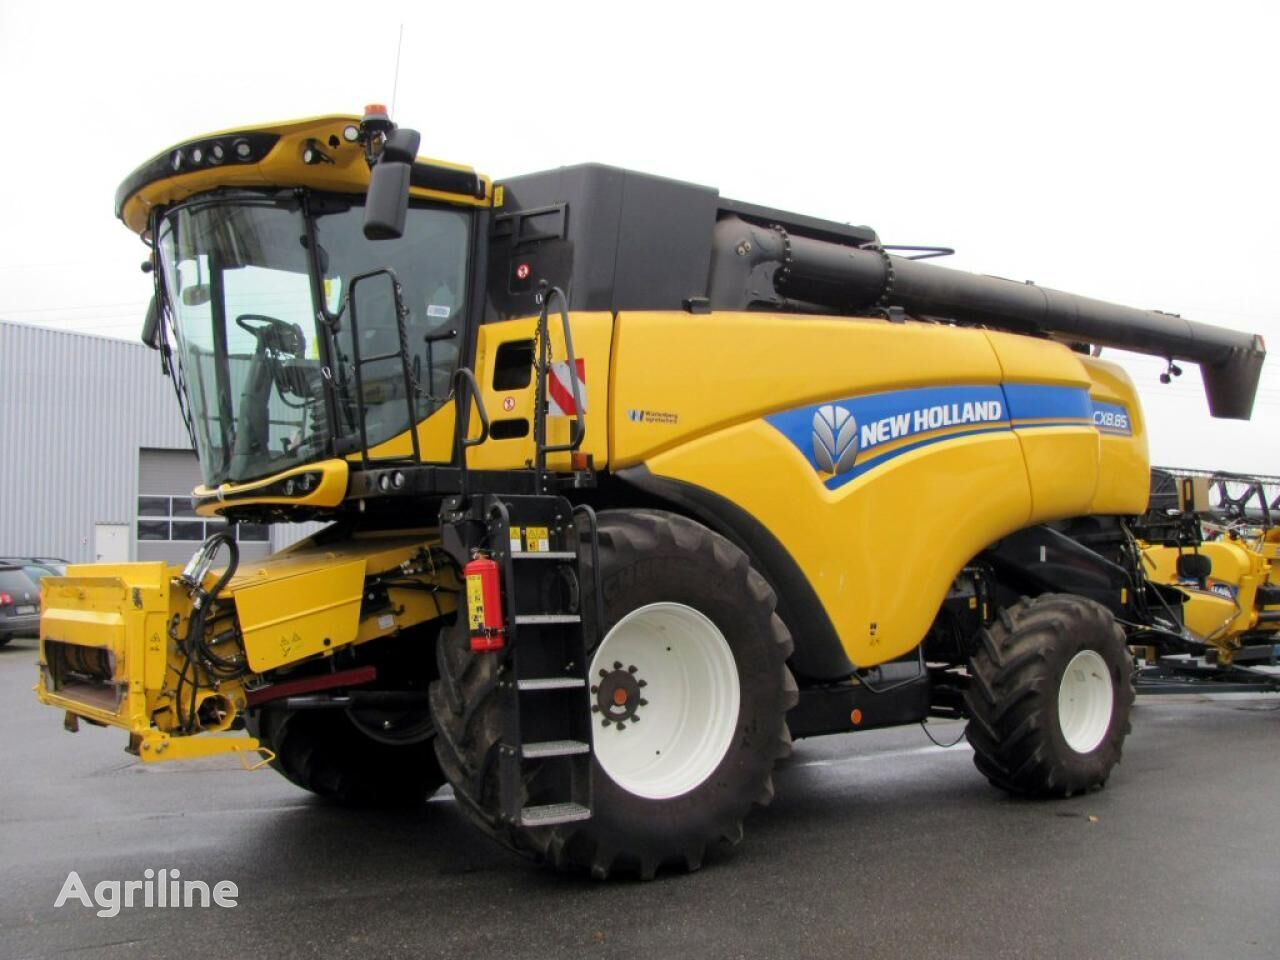 NEW HOLLAND CX 8.85 cosechadora de cereales